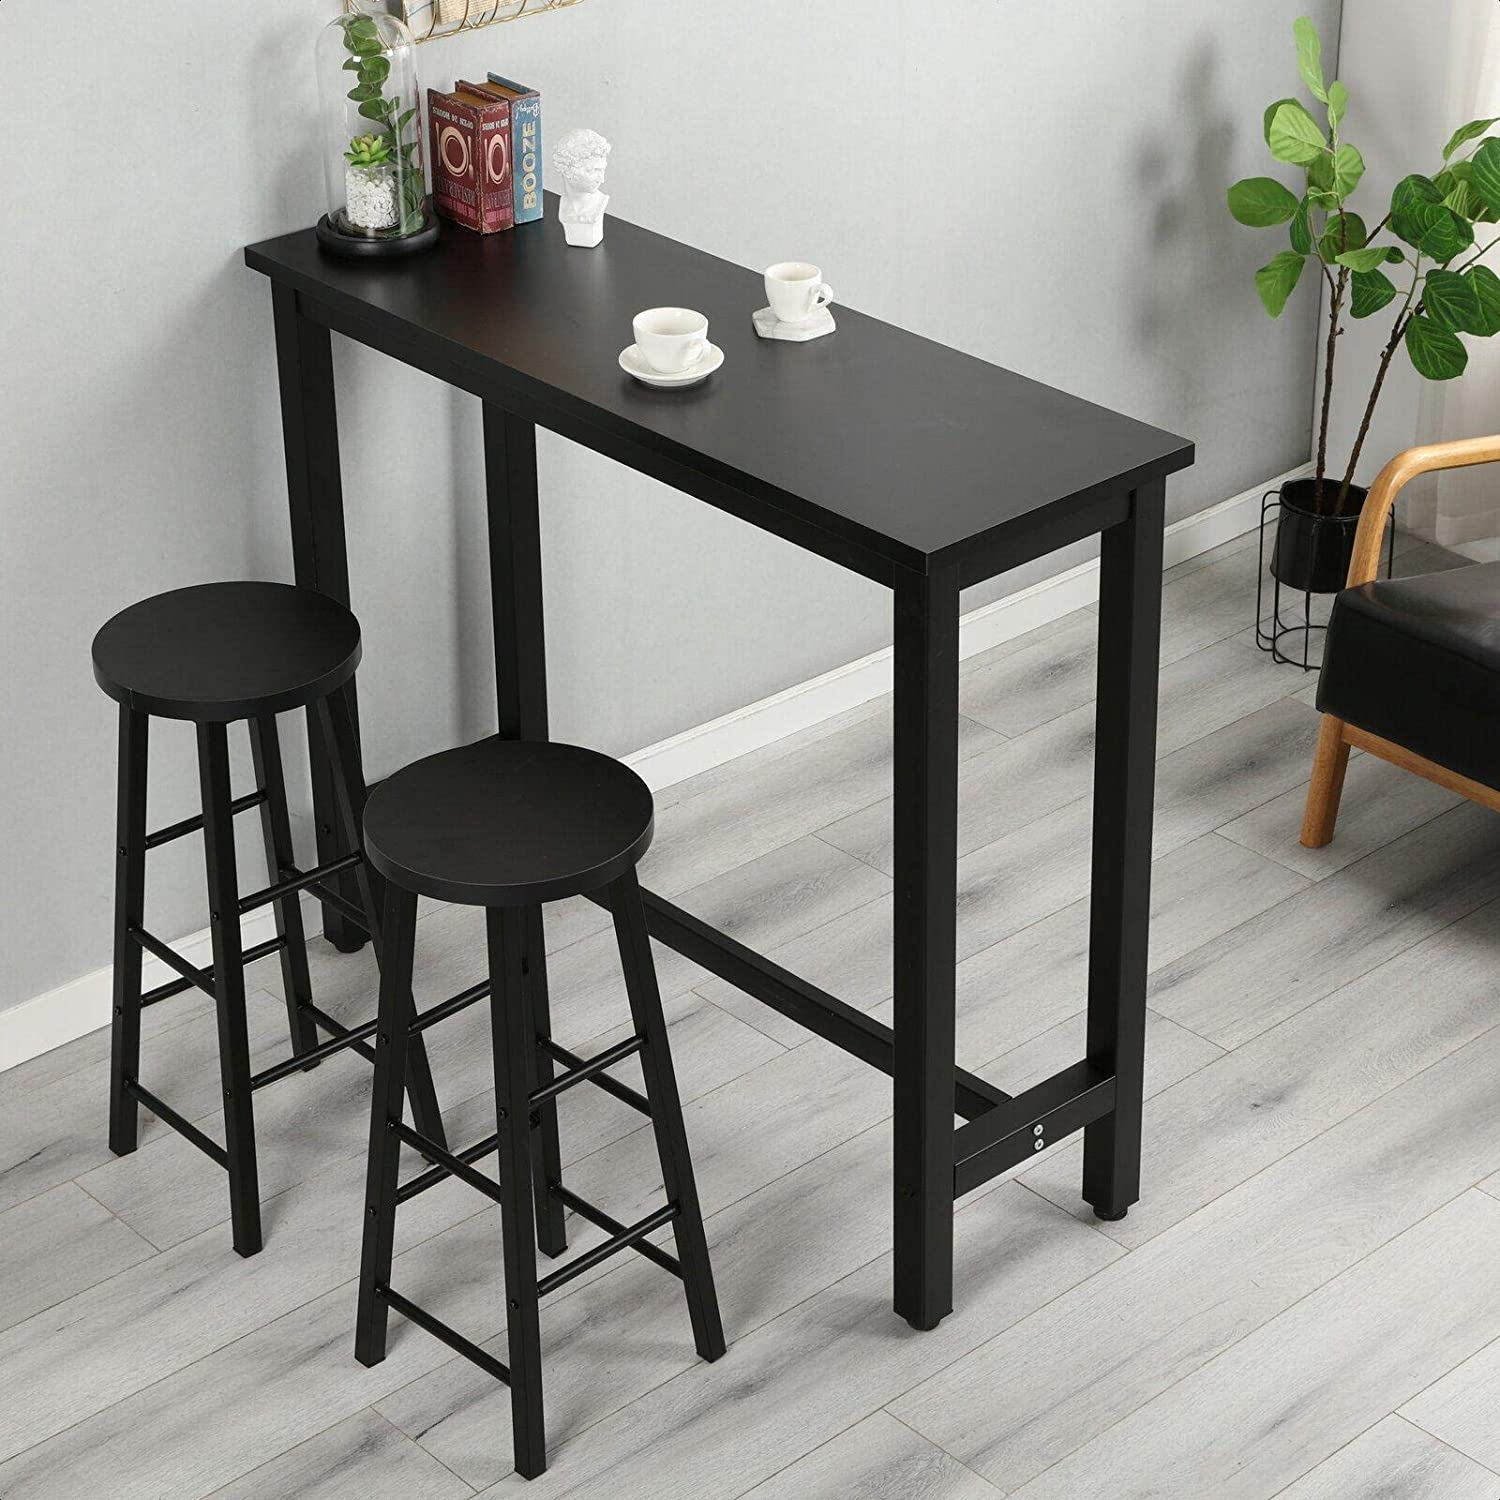 COTA 3 Piece Dining Set